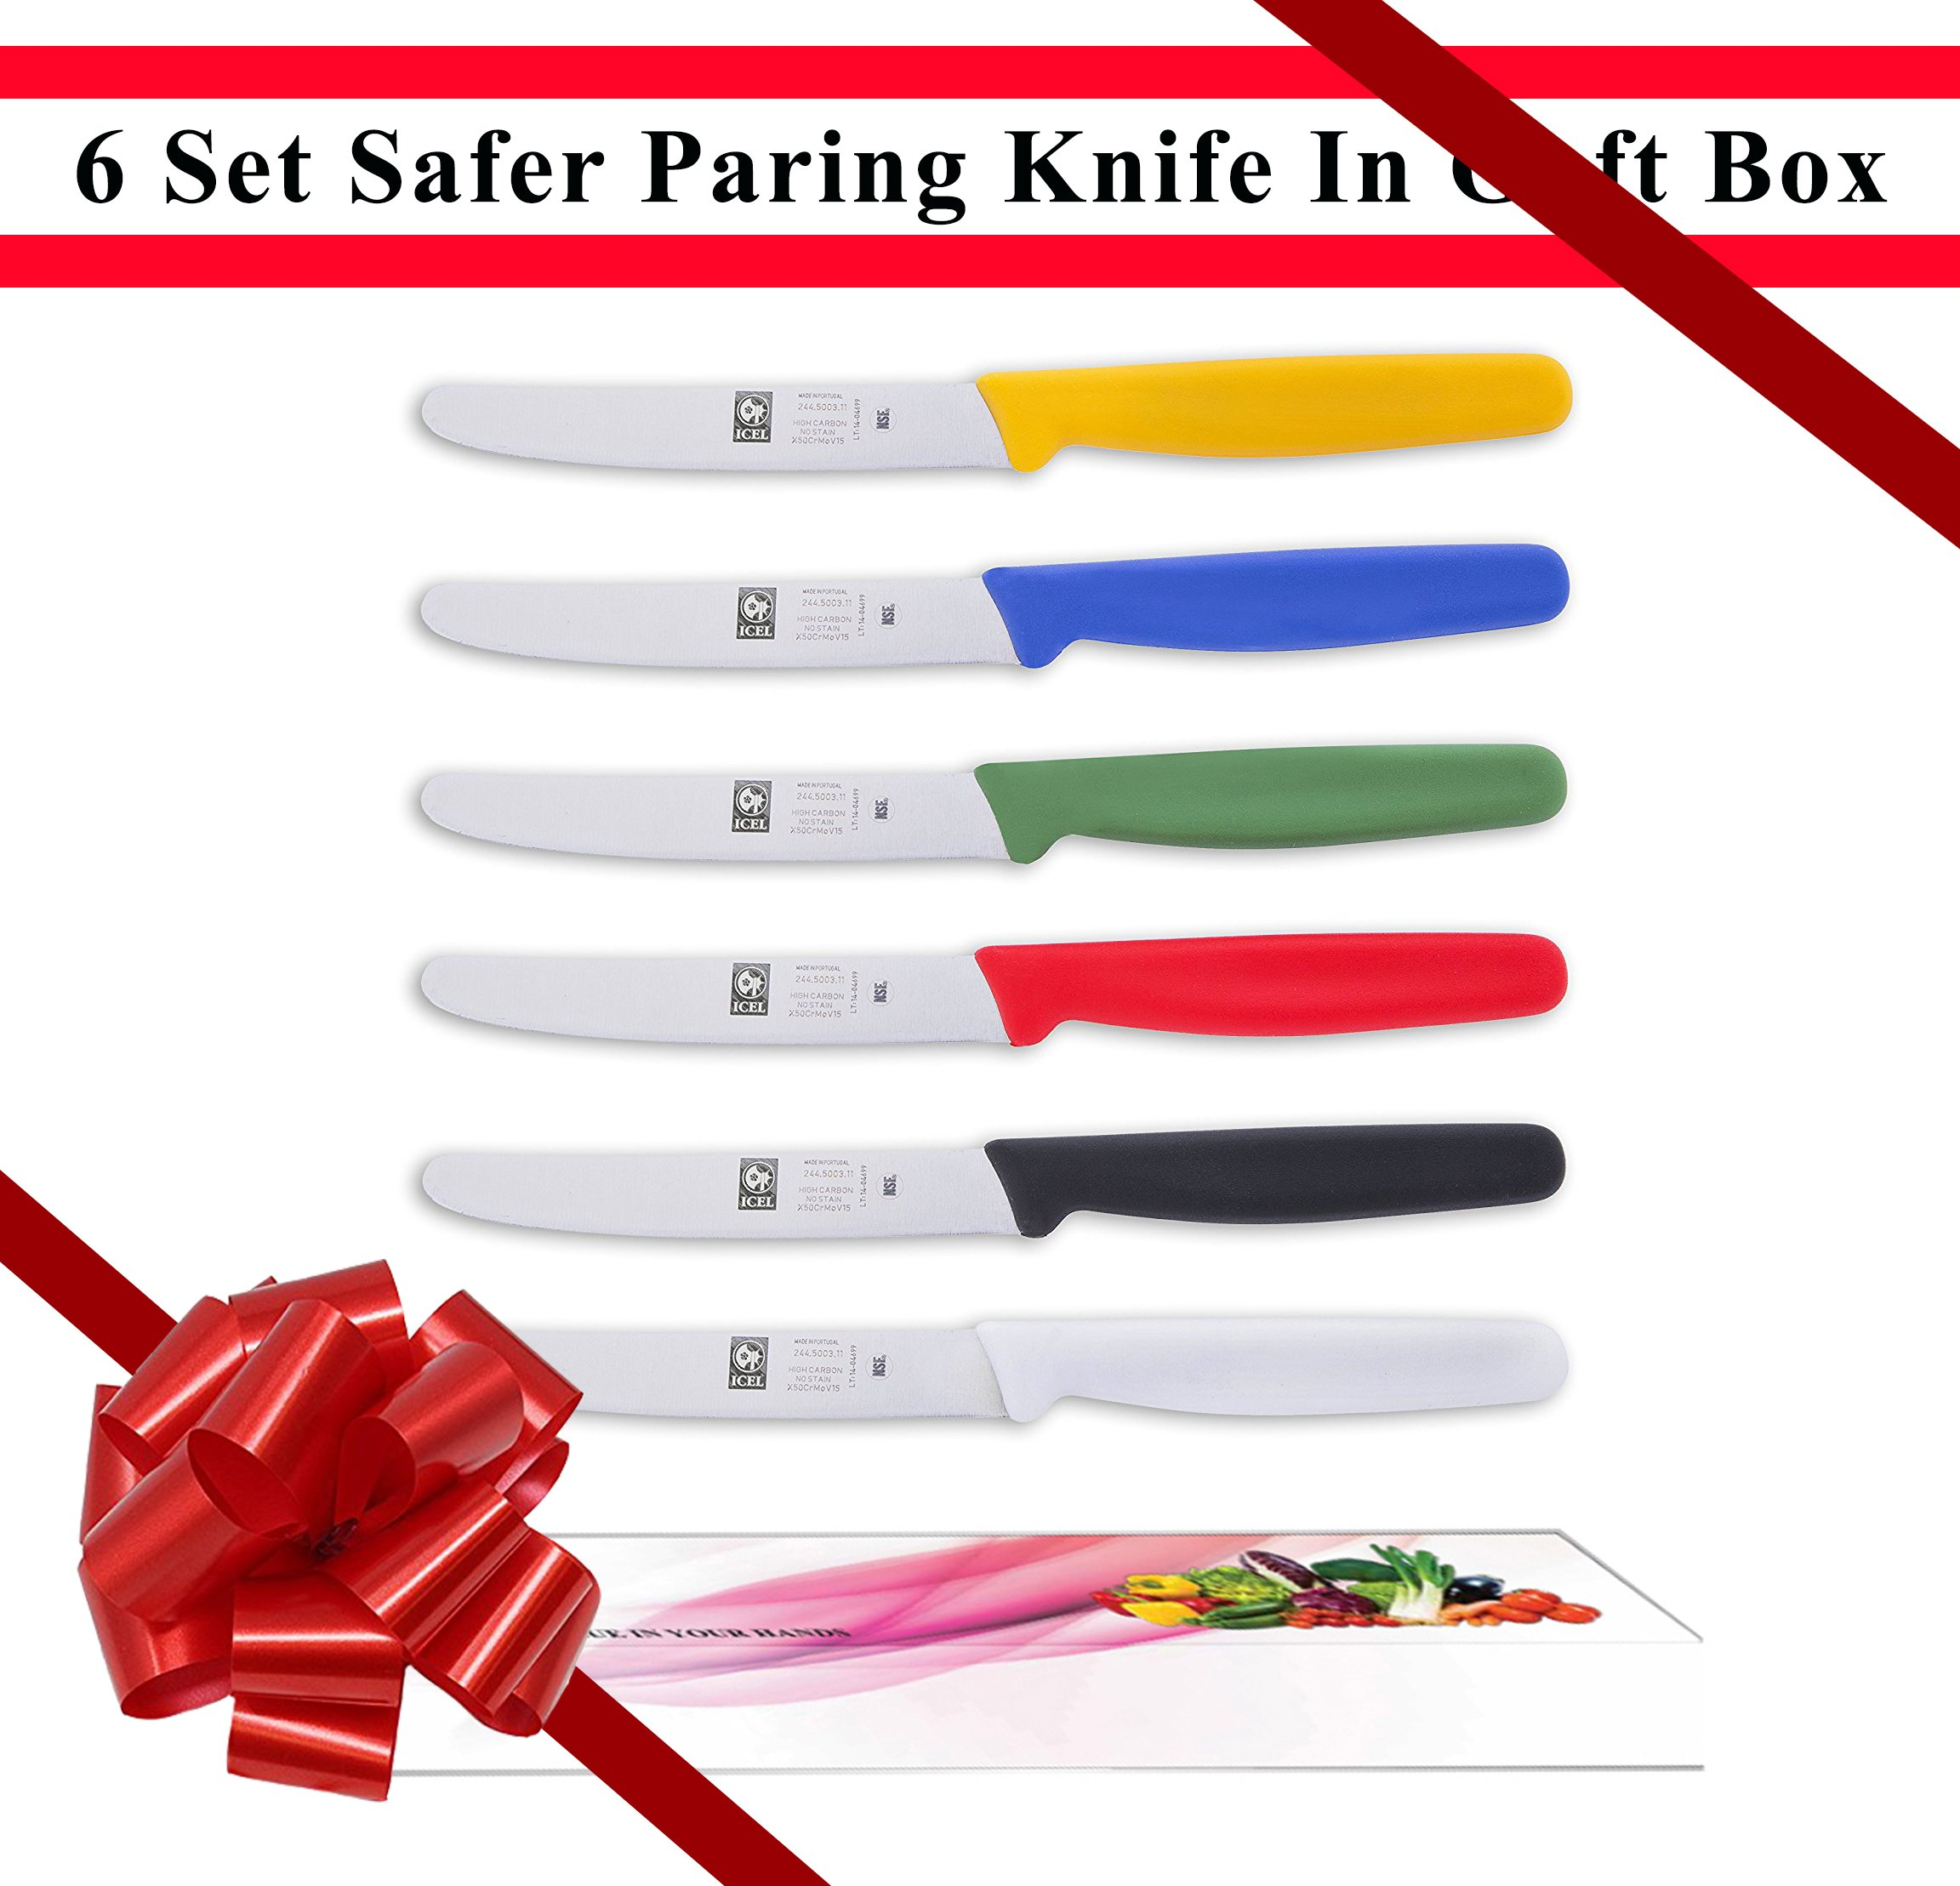 ICEL Classic Colour Collection, Colorful Safer Paring Knife Set. 6 Piece.